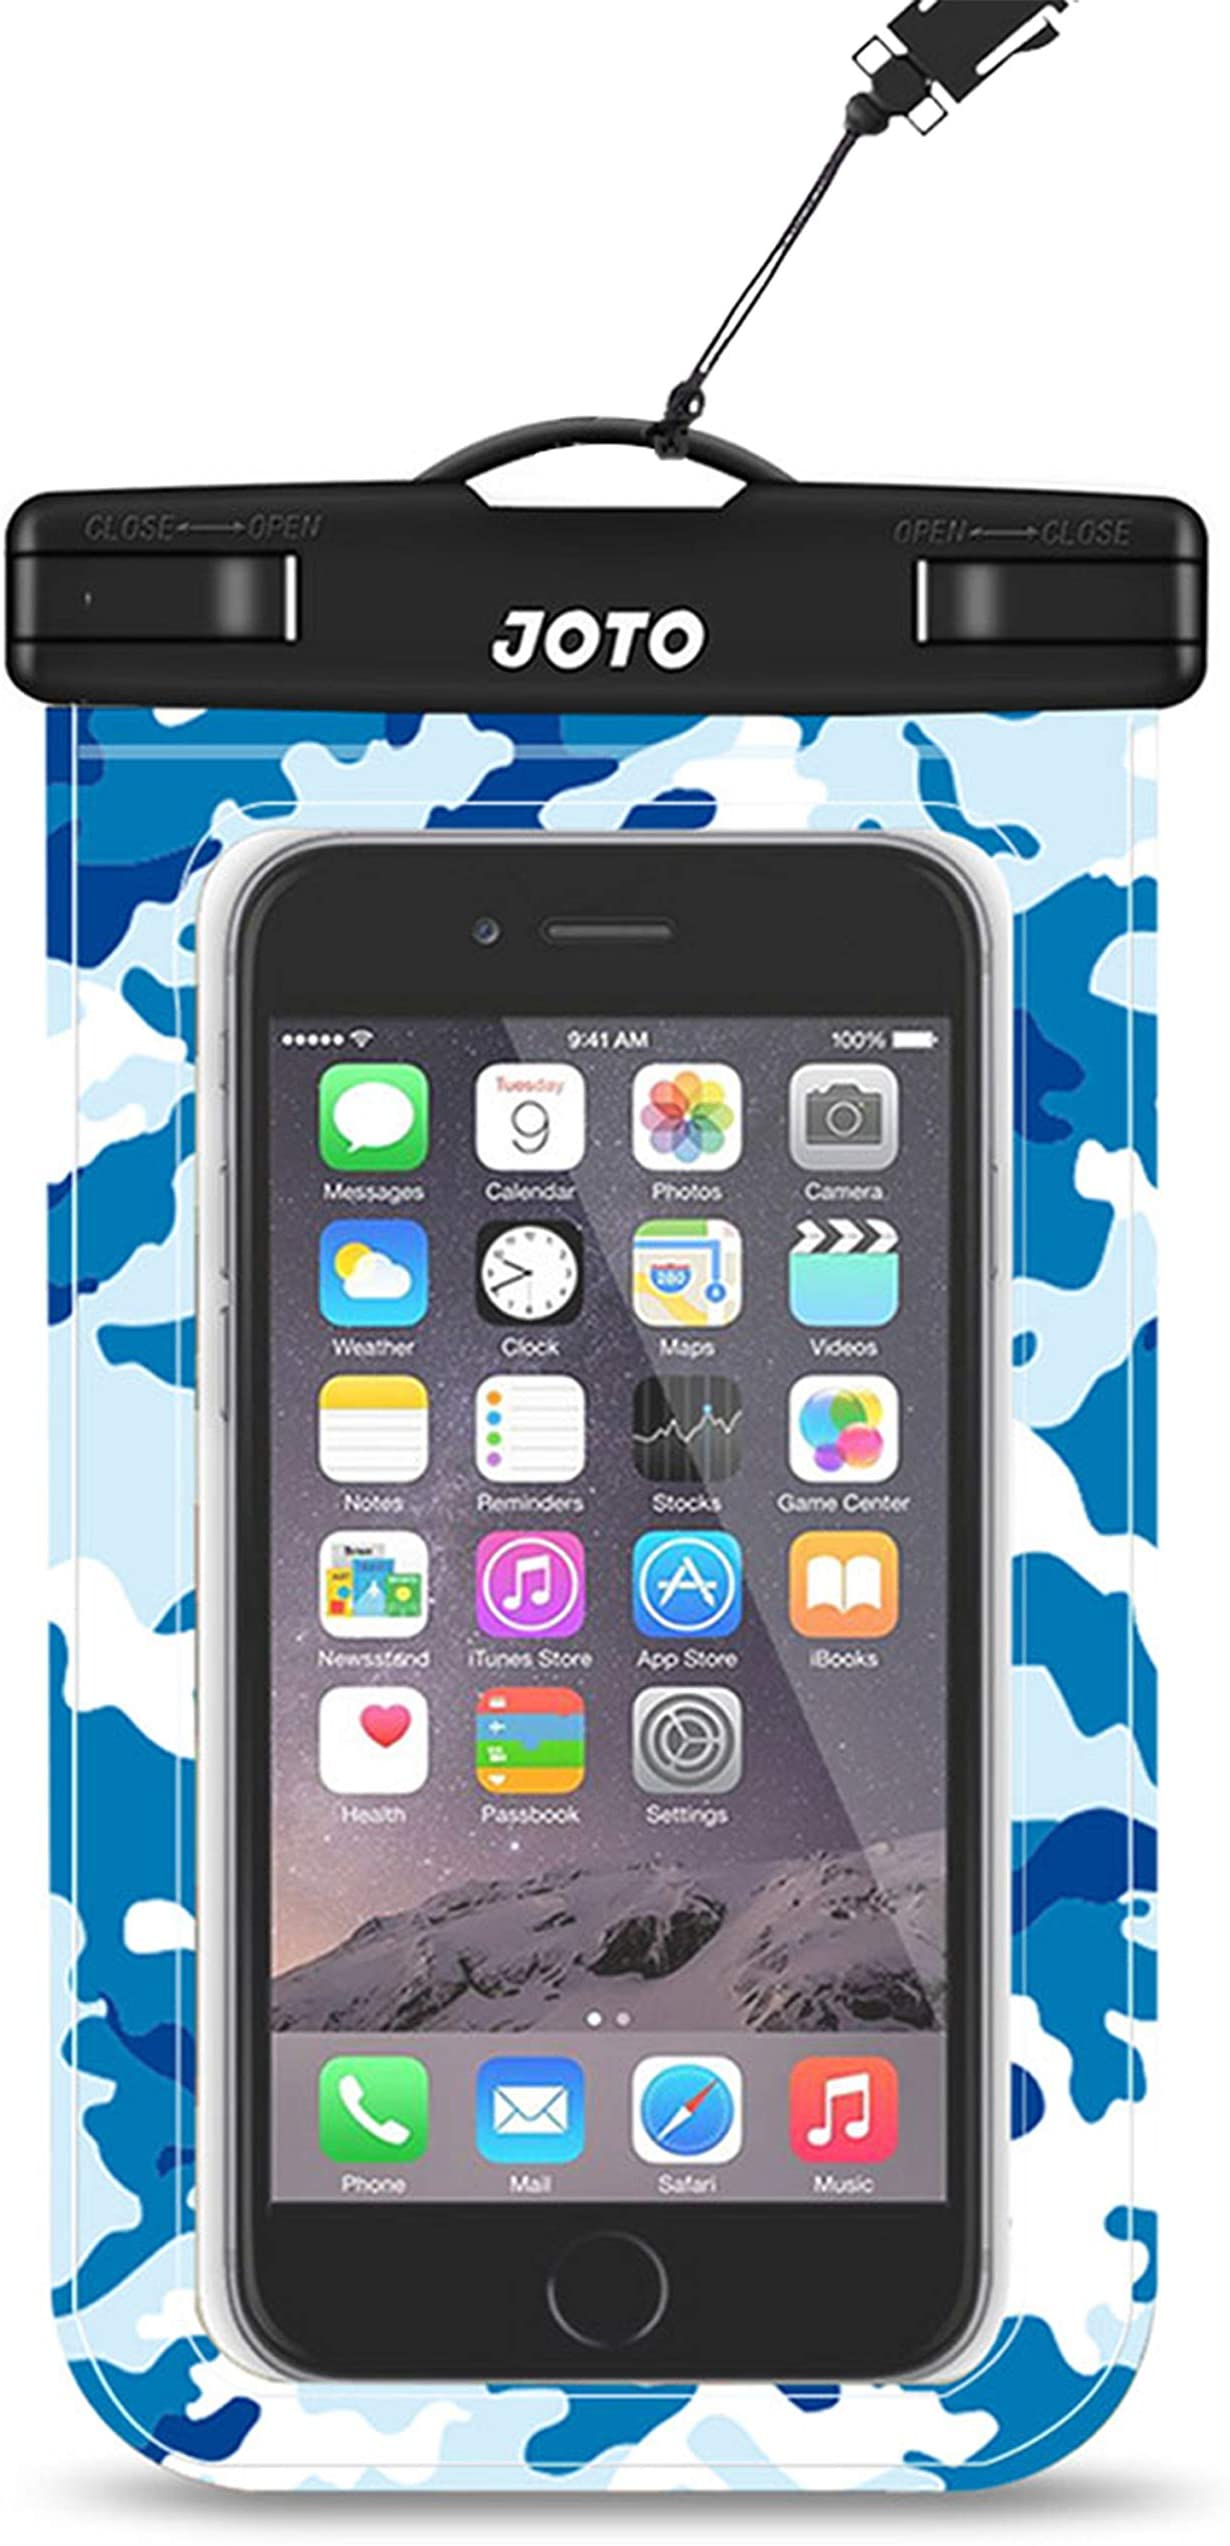 """JOTO Universal Waterproof Pouch Cellphone Dry Bag Case for iPhone 12 Pro Max 11 Pro Max Xs Max XR X 8 7 6S Plus SE, Galaxy S20 Ultra S20+ S10 Plus S10e /Note 10+ 9, Pixel 4 XL up to 6.9"""" -BlueCamo"""